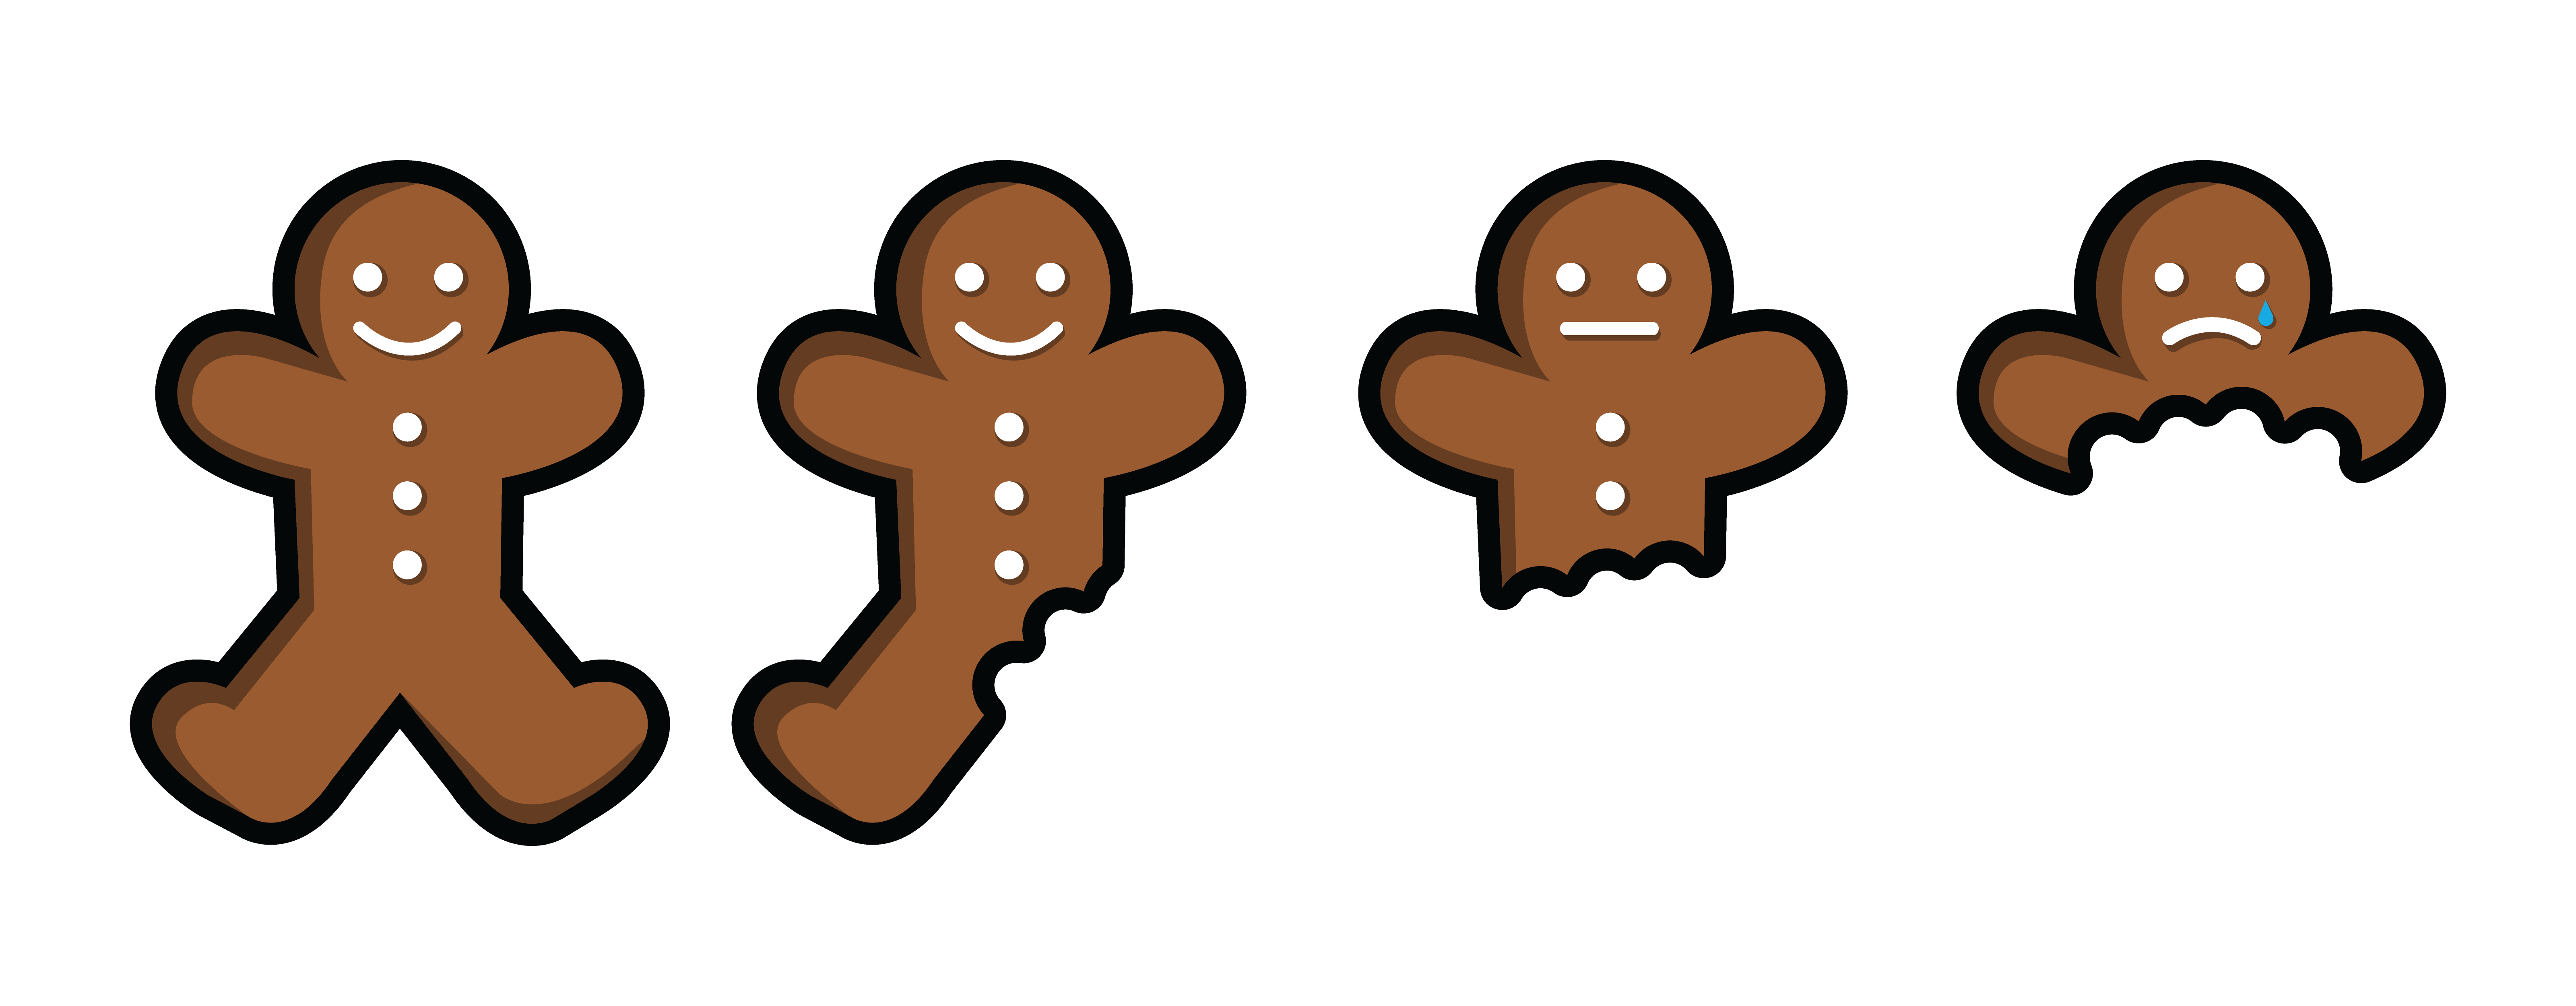 Cookie clipart eaten. Cliparts for free